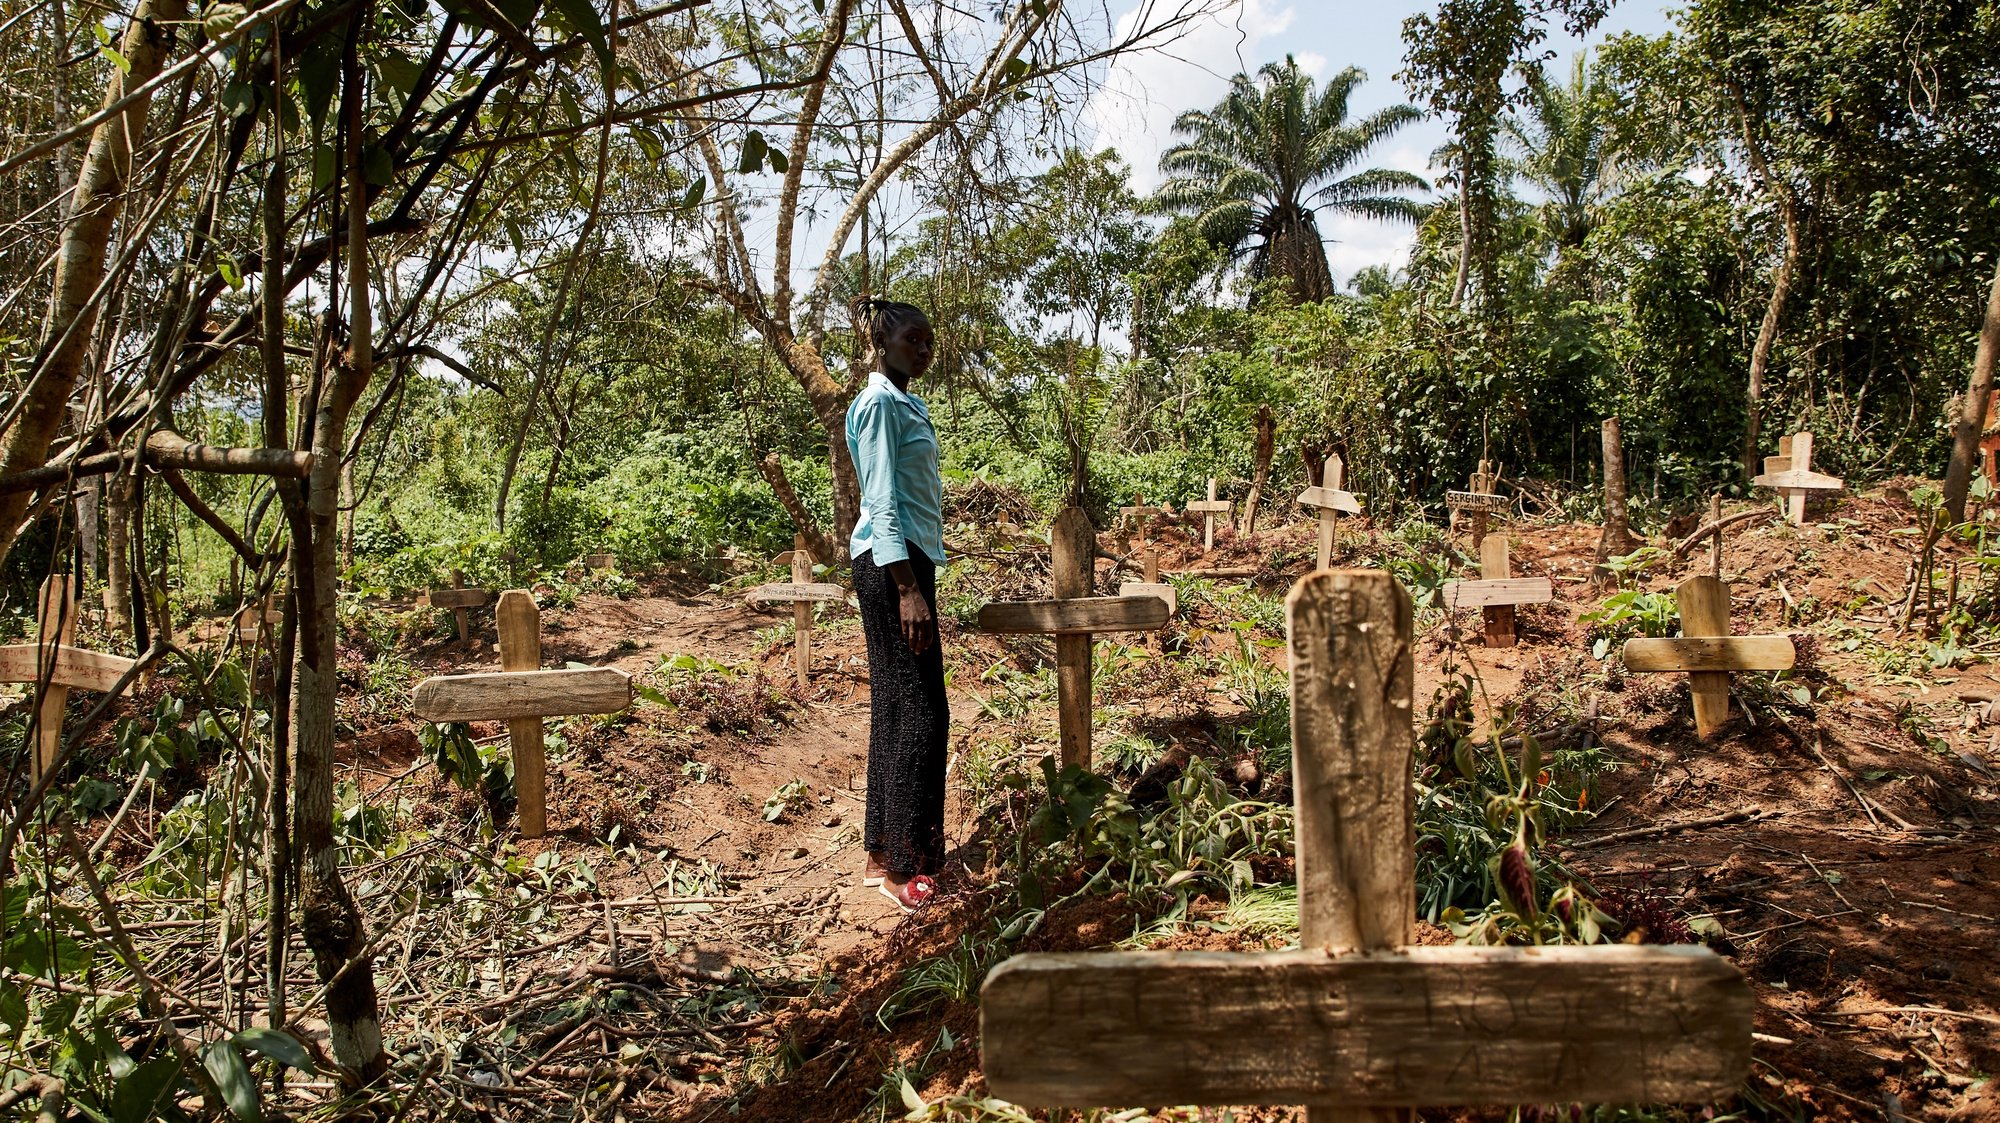 epaselect epa08891328 (19/39) Yvette Adaniya, an Ebola survivor, visits and pays her respects to the grave of her husband at a specially designated site for burials of Ebola victims, to the North of Beni, North Kivu, Democratic Republic of Congo, 14 October 2020. 'The devil will not distract us again,' says Adaniya, who lost her husband to the virus as this unfamiliar disease broke out in the forests to the North of Beni, North Kivu. 'When I had Ebola, my whole body and soul were affected. I lost weight and became bruised and black. I was throwing up, with diarrhea and headaches.  I feel like I am recovered, but I don't have any strength like before. My body became weak, not like it used to be.  In my family, it killed 2 people, my husband, and my brother-in-law.  When it arrived in the village, we got infected at the health center, my husband was ill [with another sickness] so we took him to the health center nearest the village. We shared the same room with a person affected by Ebola, who was about to be collected by an ambulance.  We weren't sure what it was, yes they would tell us it was Ebola, but this disease was like a demon, we did not listen to the information, we thought it was about politics, not a disease. We did not rush to the health center; rumors spread that people don't leave the health center: that [our ethnic group] Nande, would never leave there.  Advice for people suffering with this Corona, Covid-19. We need to be flexible, washing hands, use hygiene. The devil will not distract us again, we were like fools, and we did not listen. This time we need to be flexible to follow and respect what  doctors say.'  EPA/Hugh Kinsella Cunningham ATTENTION EDITORS / MANDATORY CREDIT : This story was produced in partnership with the Pulitzer Center -- For the full PHOTO ESSAY text please see Advisory Notice epa...